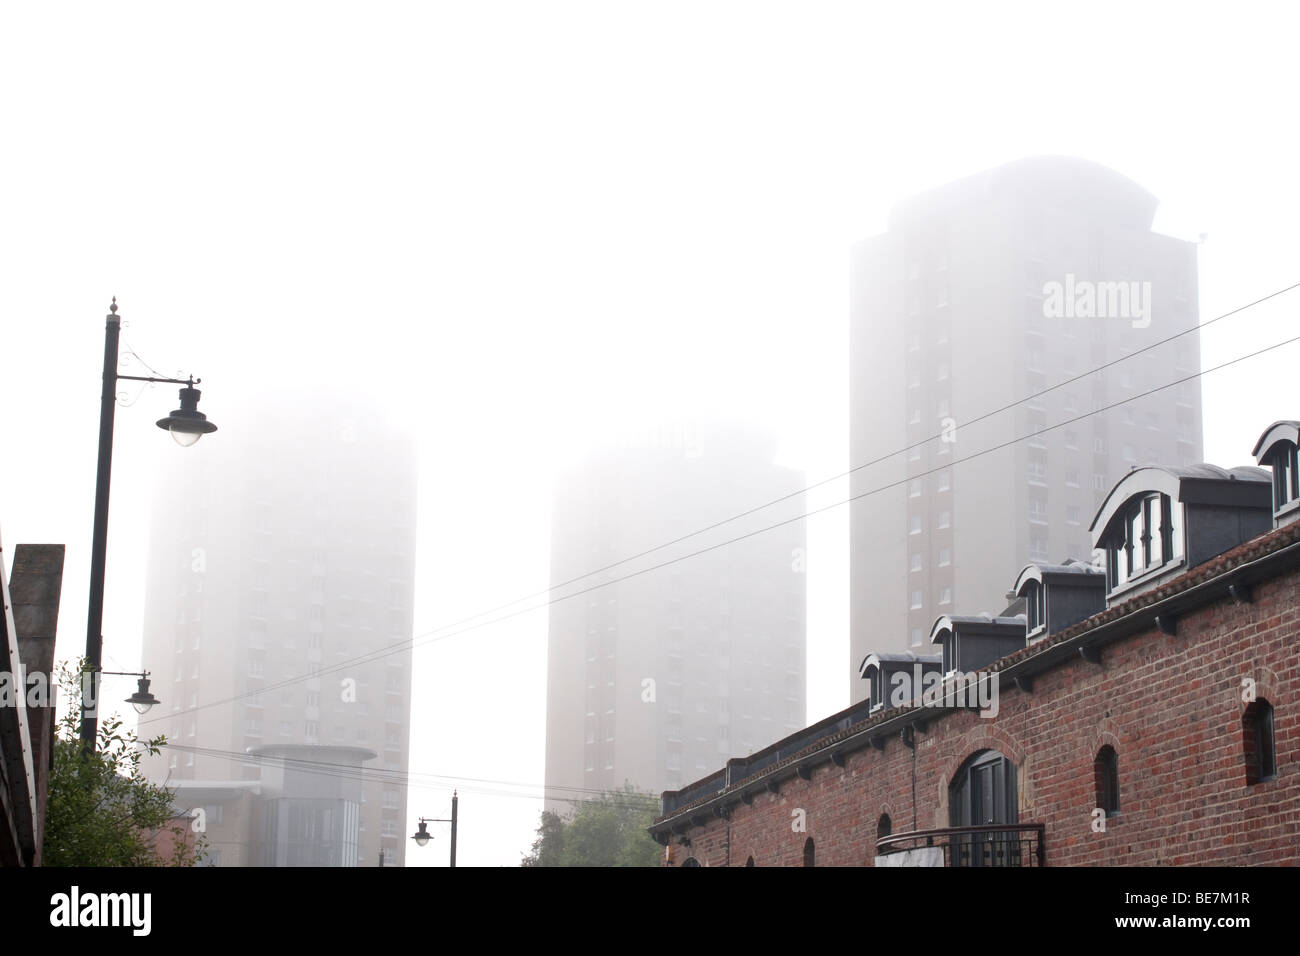 City apartments on misty day - Stock Image